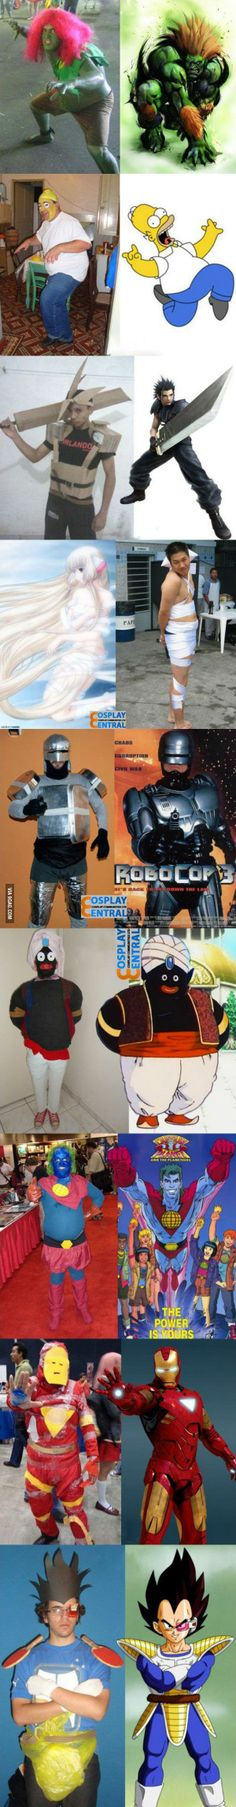 Cosplay costumes aren't for everybody